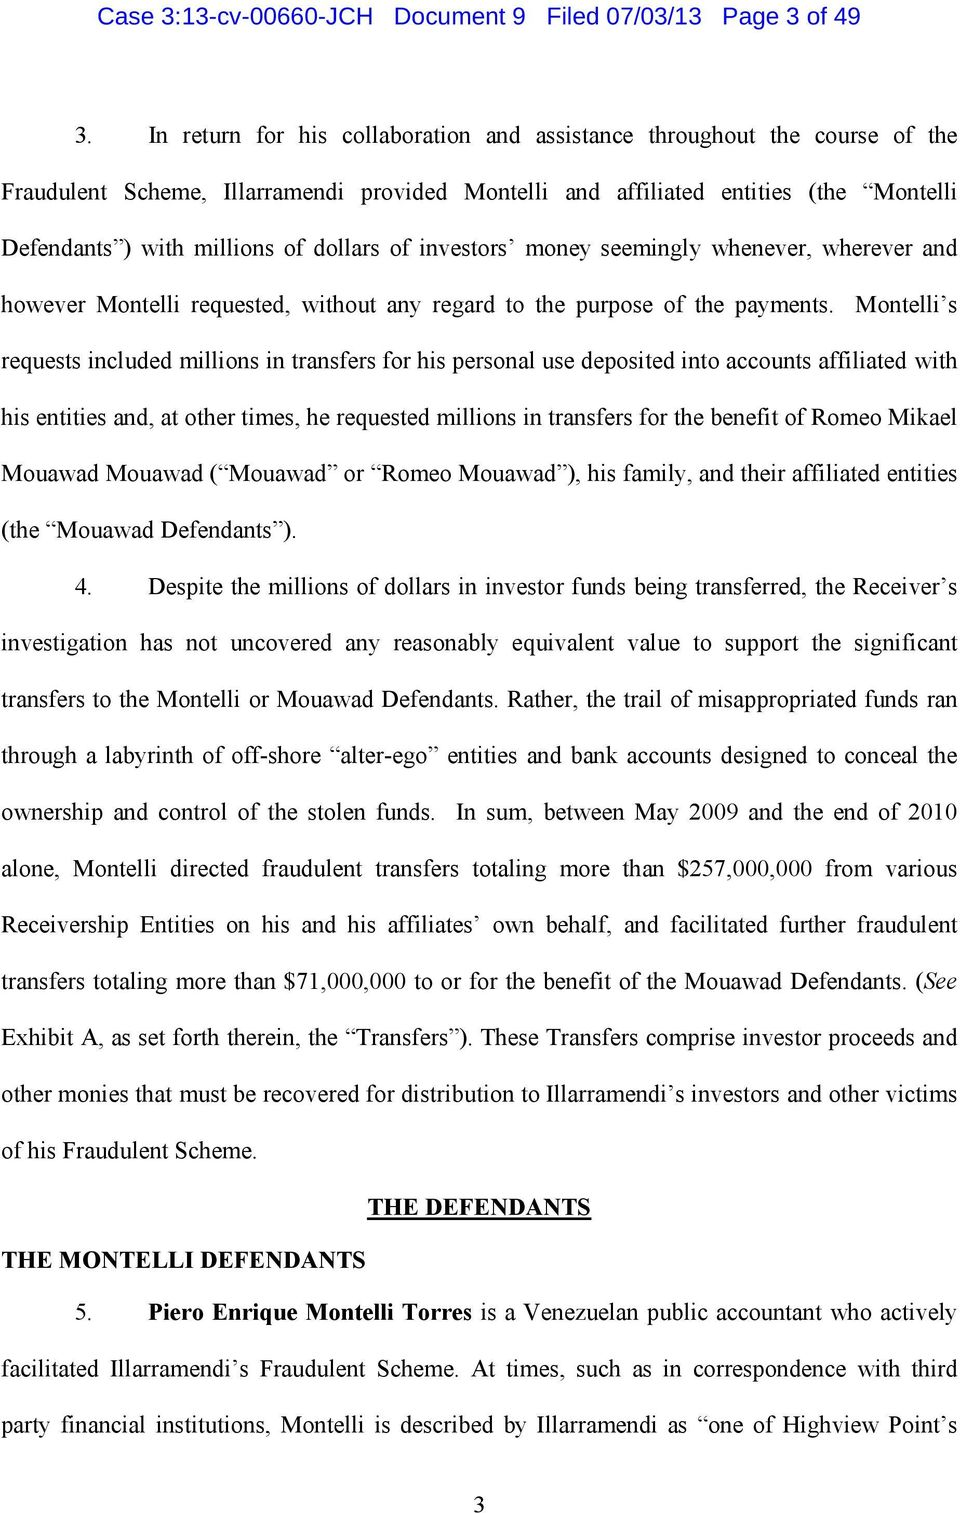 Montelli s requests included millions in transfers for his personal use deposited into accounts affiliated with his entities and, at other times, he requested millions in transfers for the benefit of